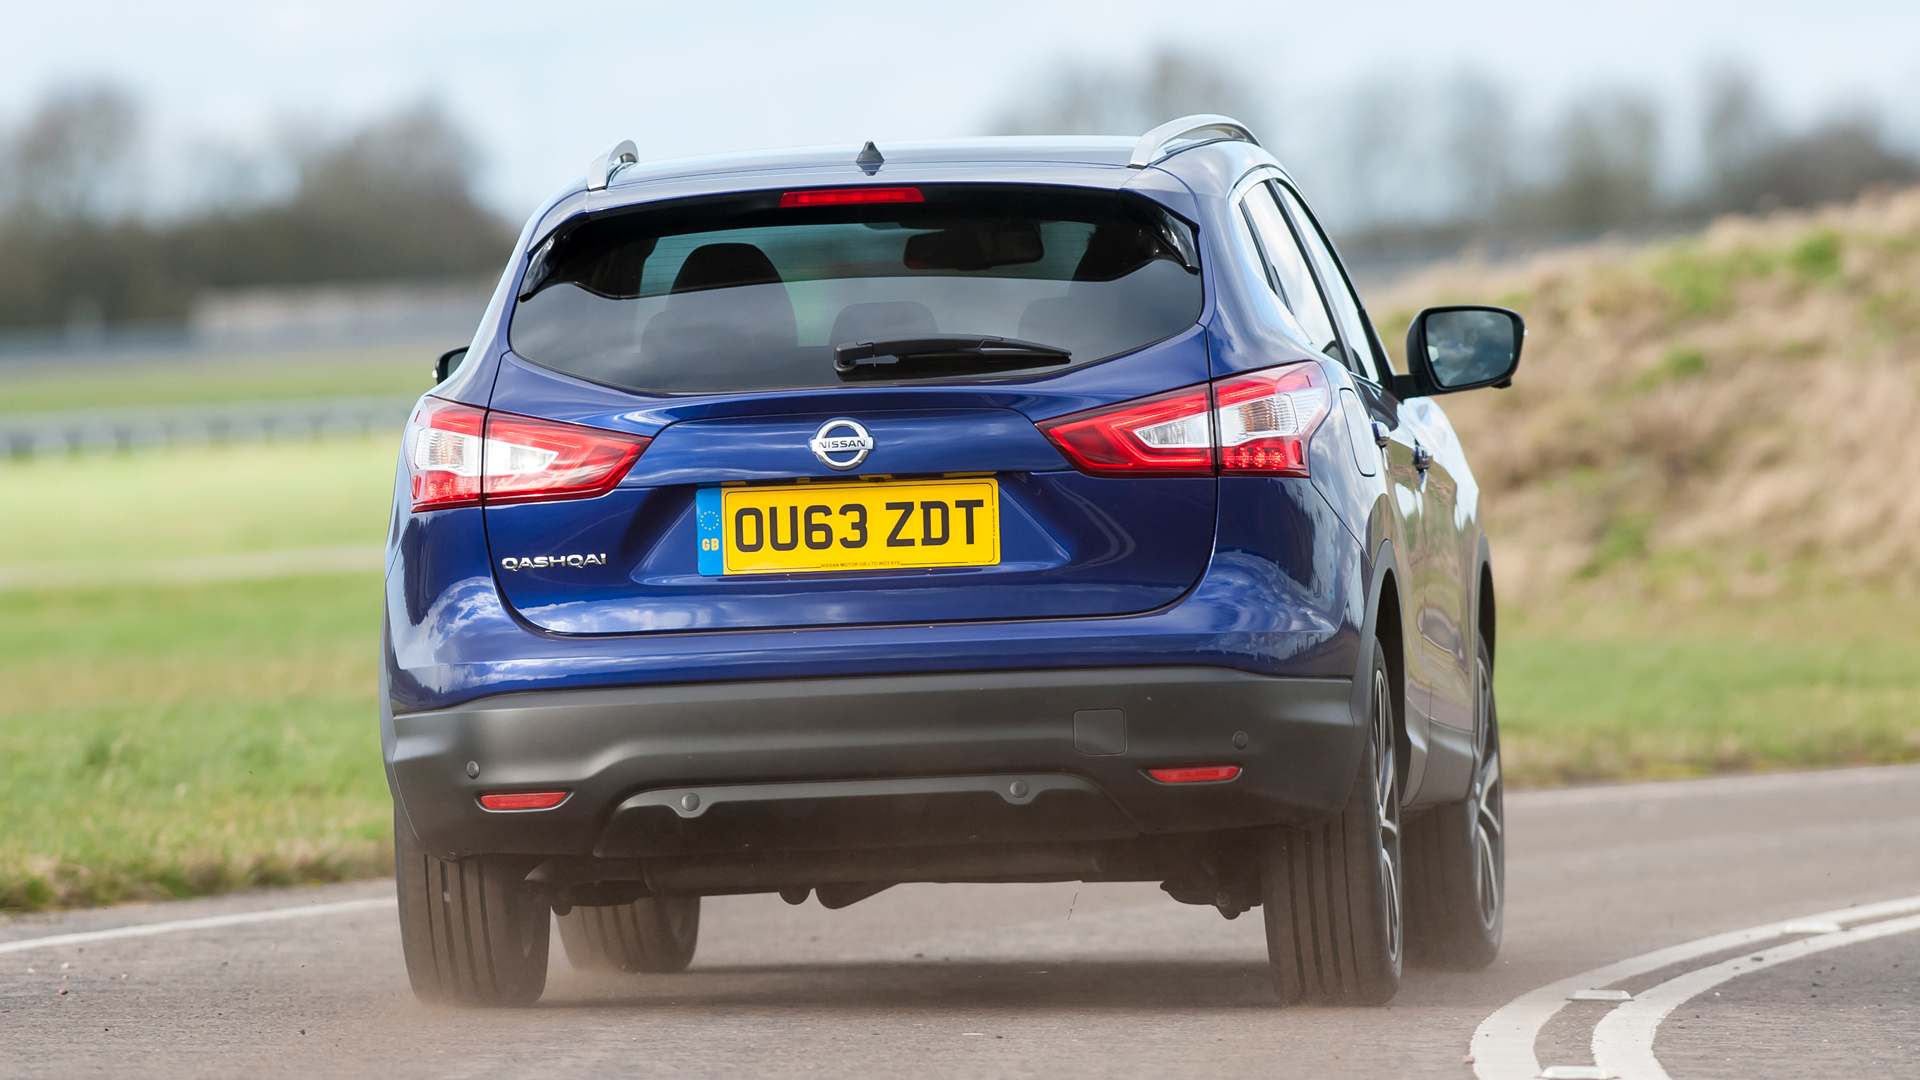 Nissan Qashqai Private Lease New Used Nissan Qashqai Cars For Sale Auto Trader